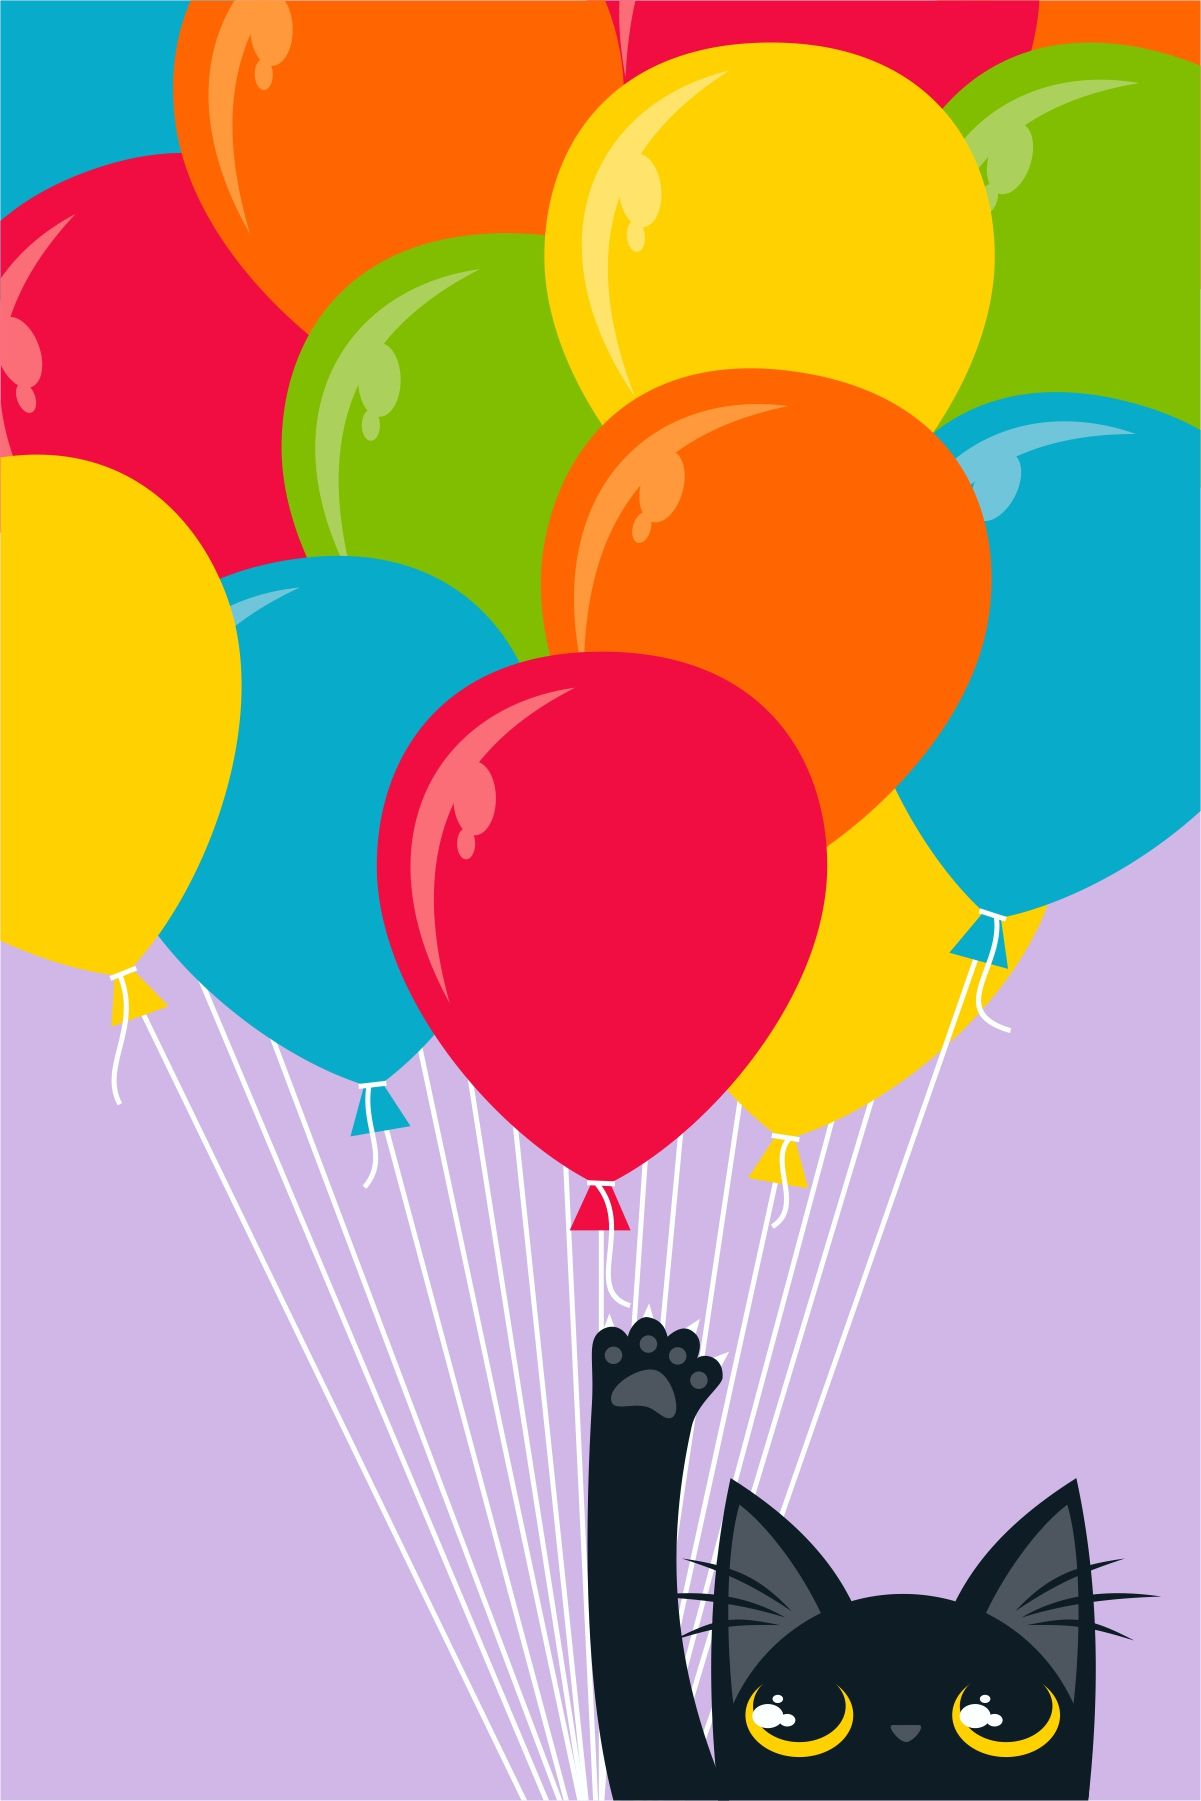 set of 4 Funny Black Cat vs Party Balloons Cards Funny Black Cat Art Card Set Funny Black Cat Birthday Balloons Note Cards /& Stationery